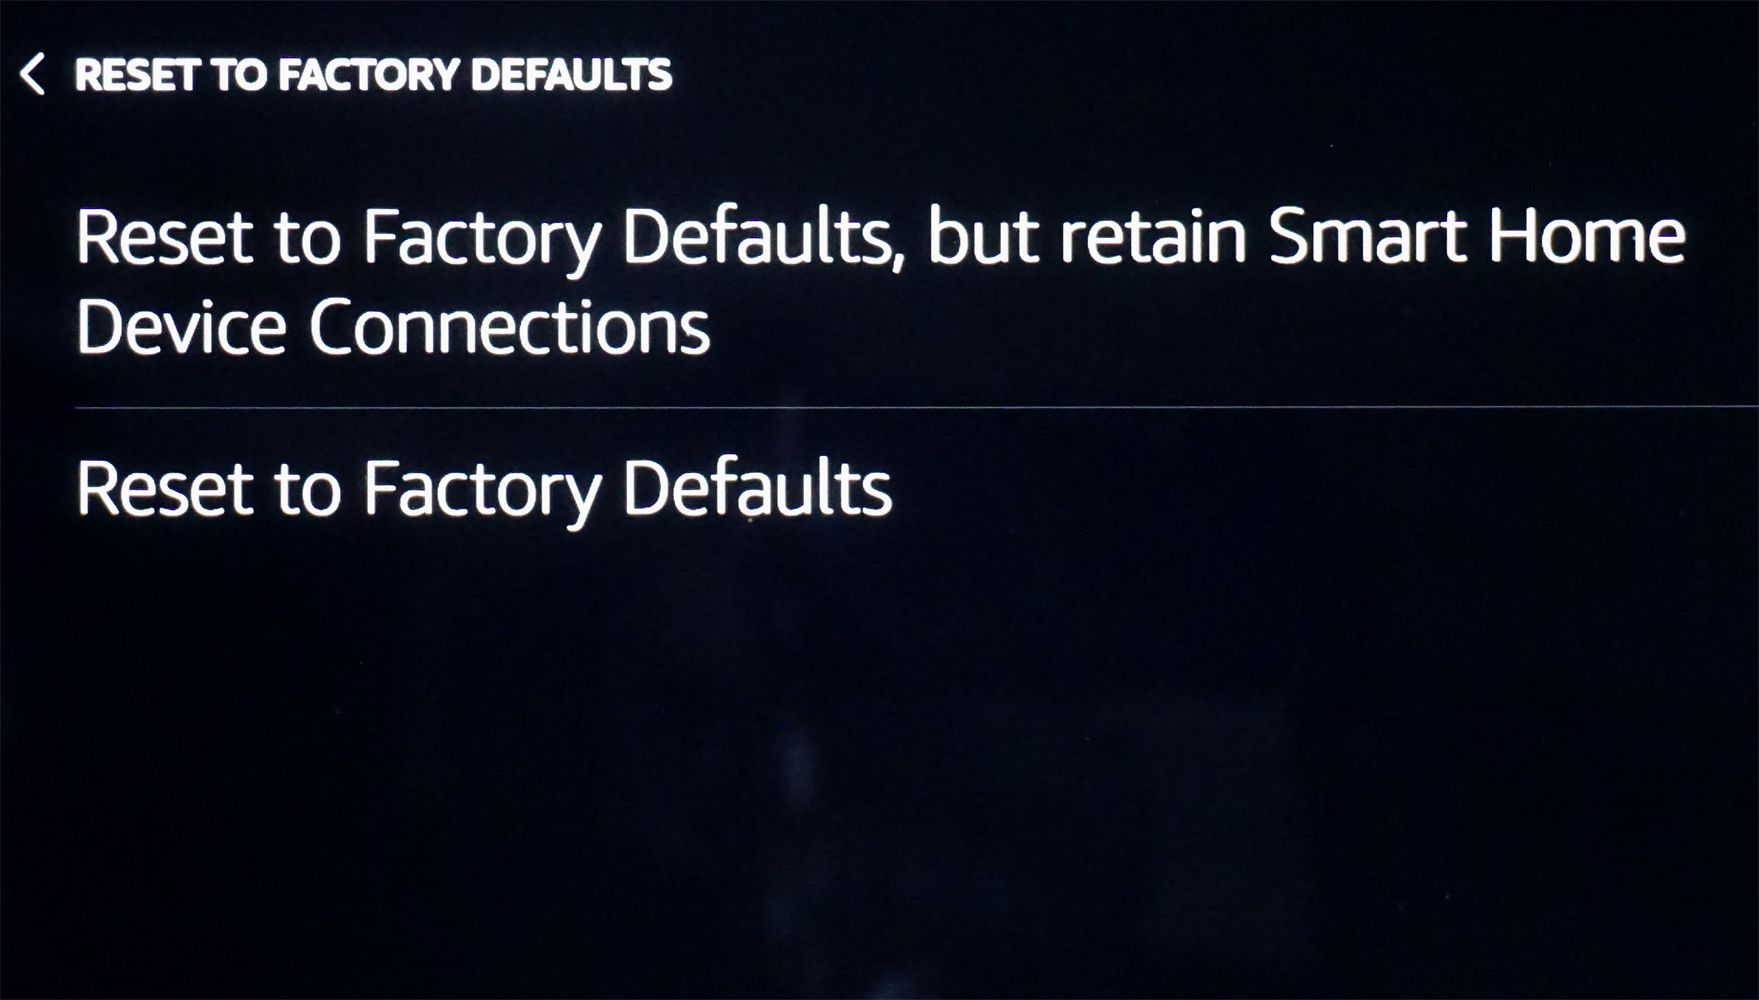 Echo Show – Reset to Factory Defaults Prompts